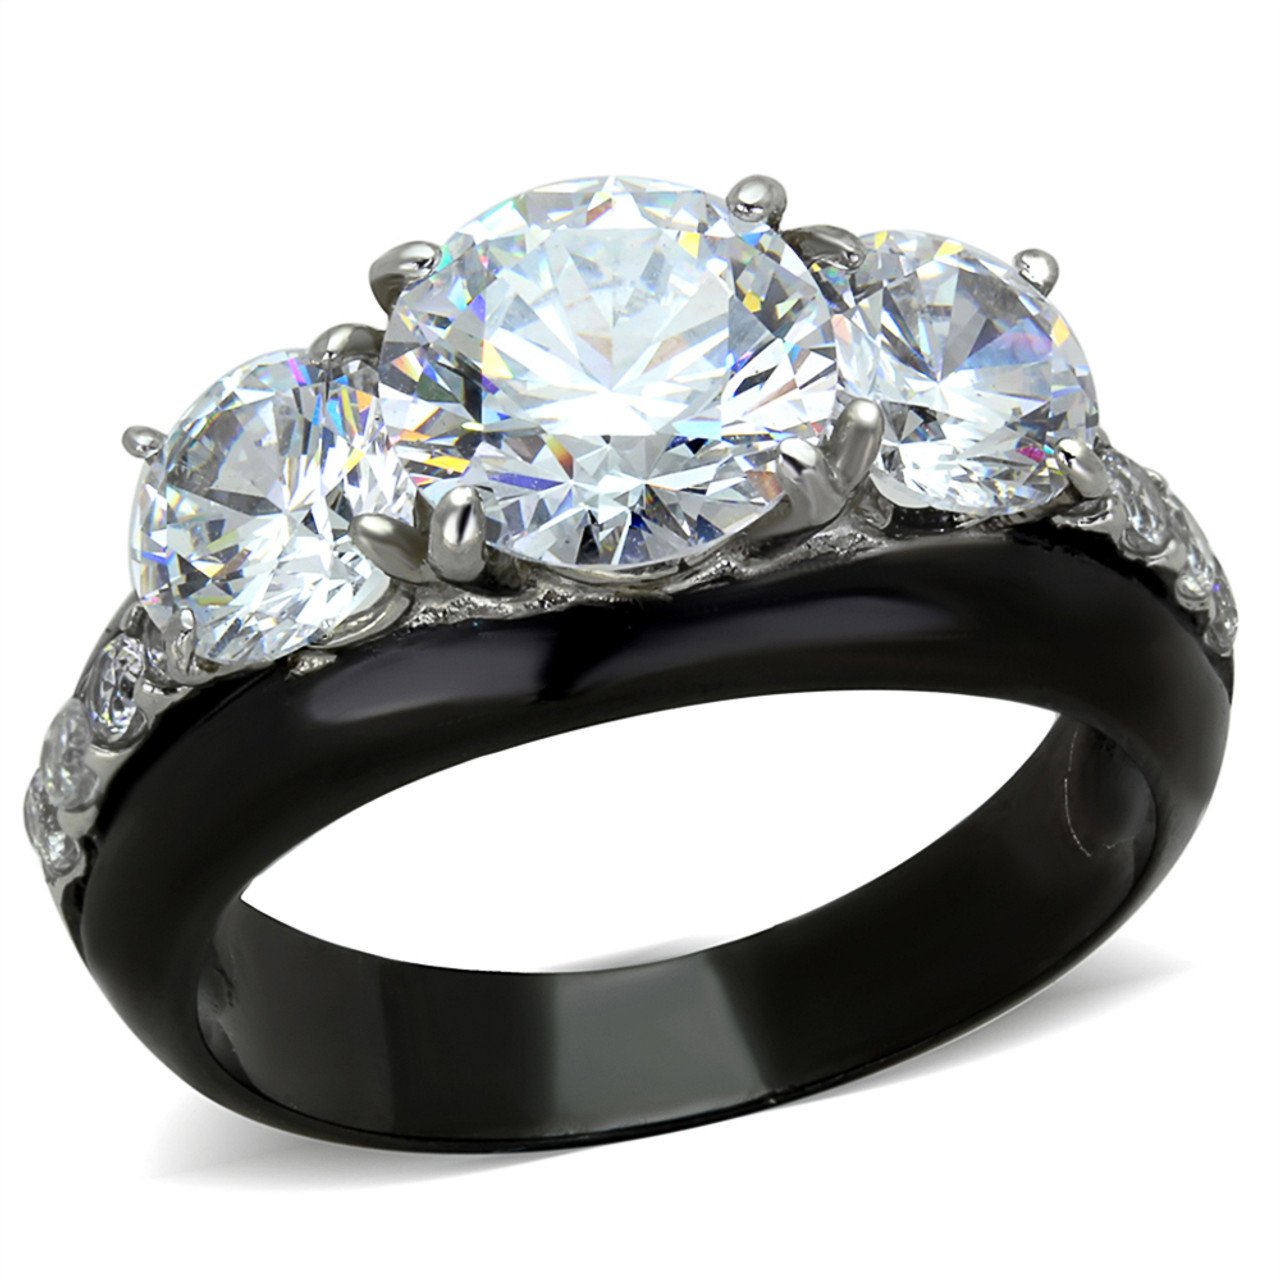 Marimor Jewelry Womens 1.65 Ct Round Cut AAA Cz Black Stainless Steel Engagement Ring Size 5-10